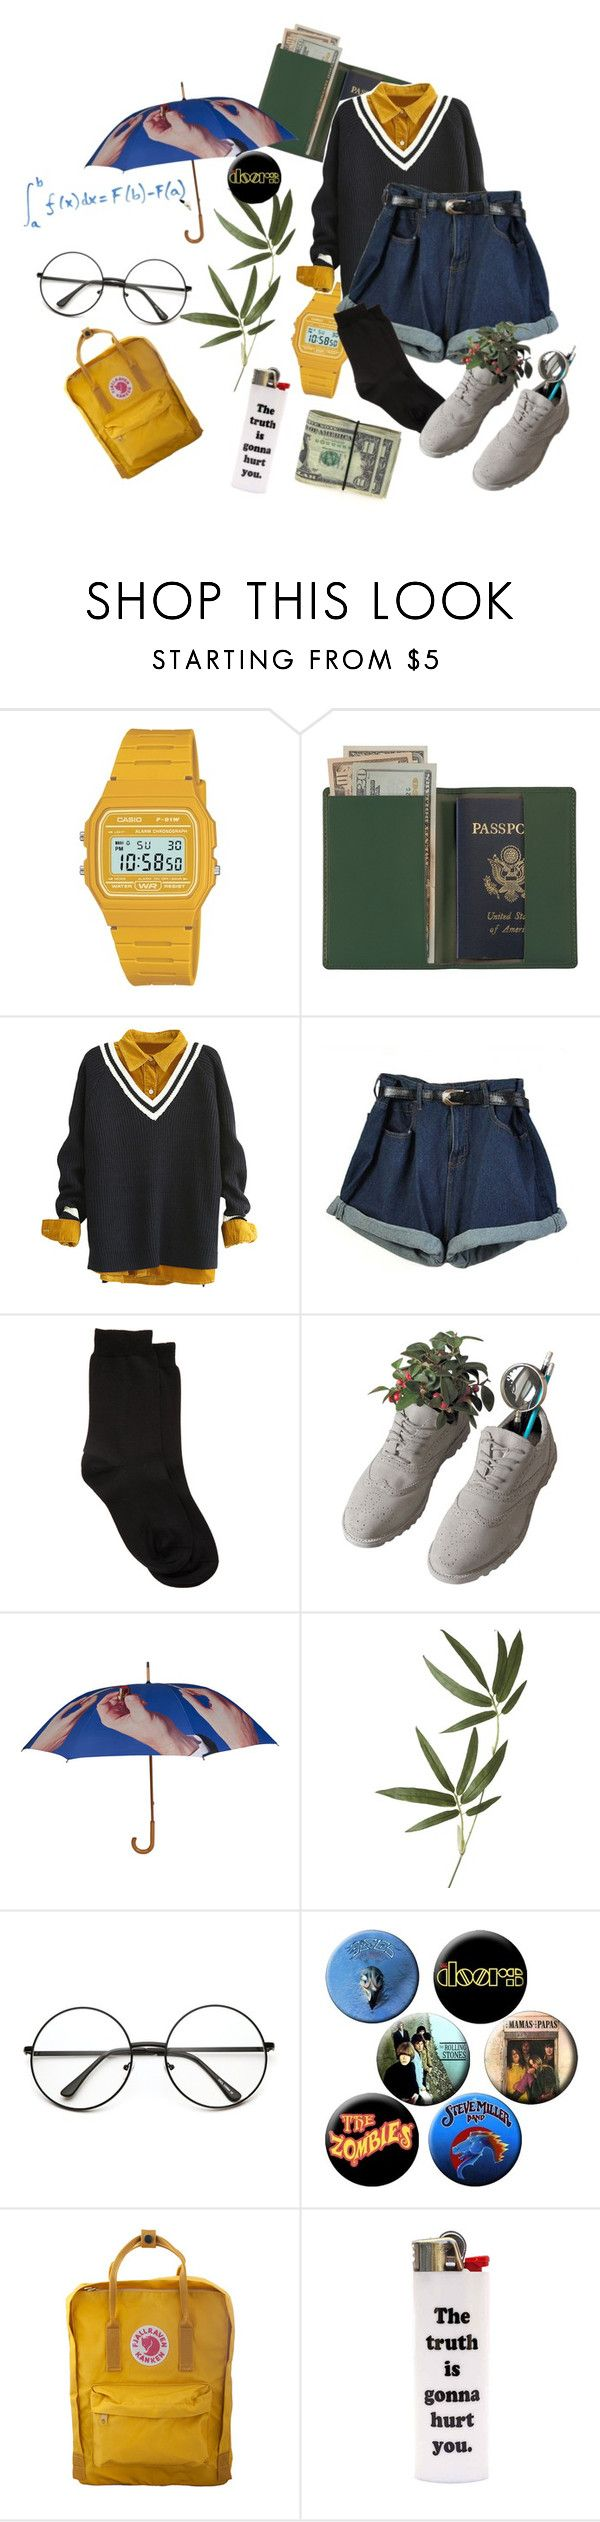 """Untitled #66"" by breadcactus ❤ liked on Polyvore featuring Casio, Royce Leather, Maria La Rosa, Seletti, Crate and Barrel and Fjällräven"